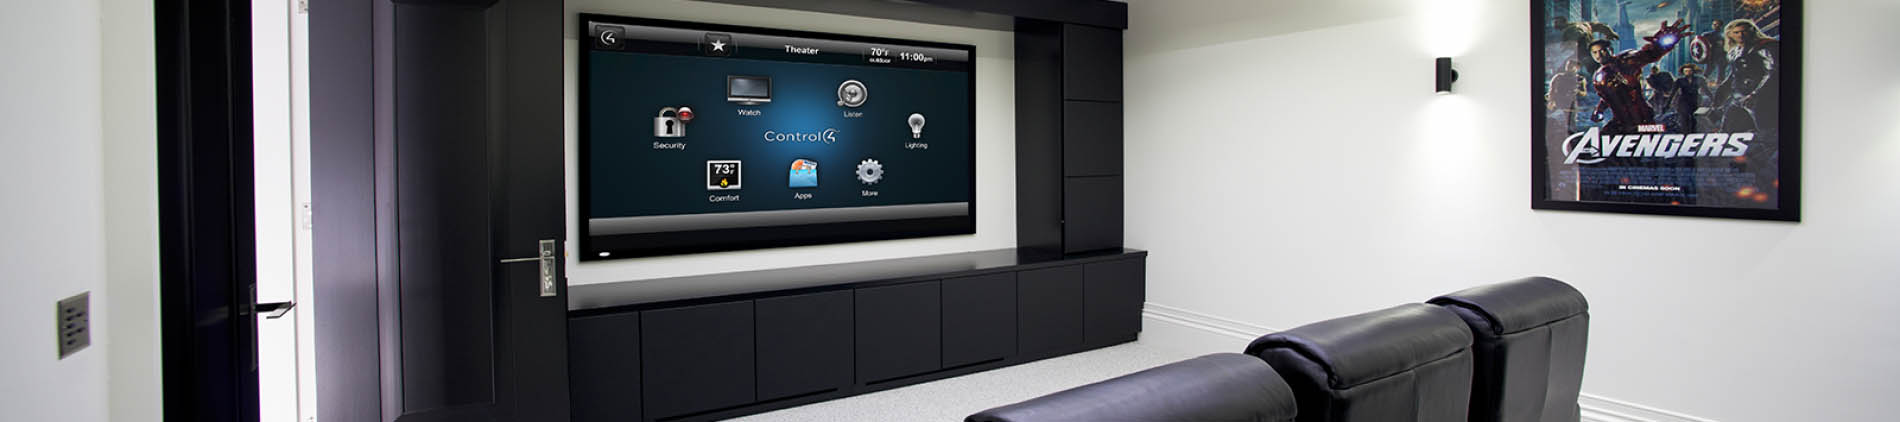 EXPERT ADVICE on Home Theatre